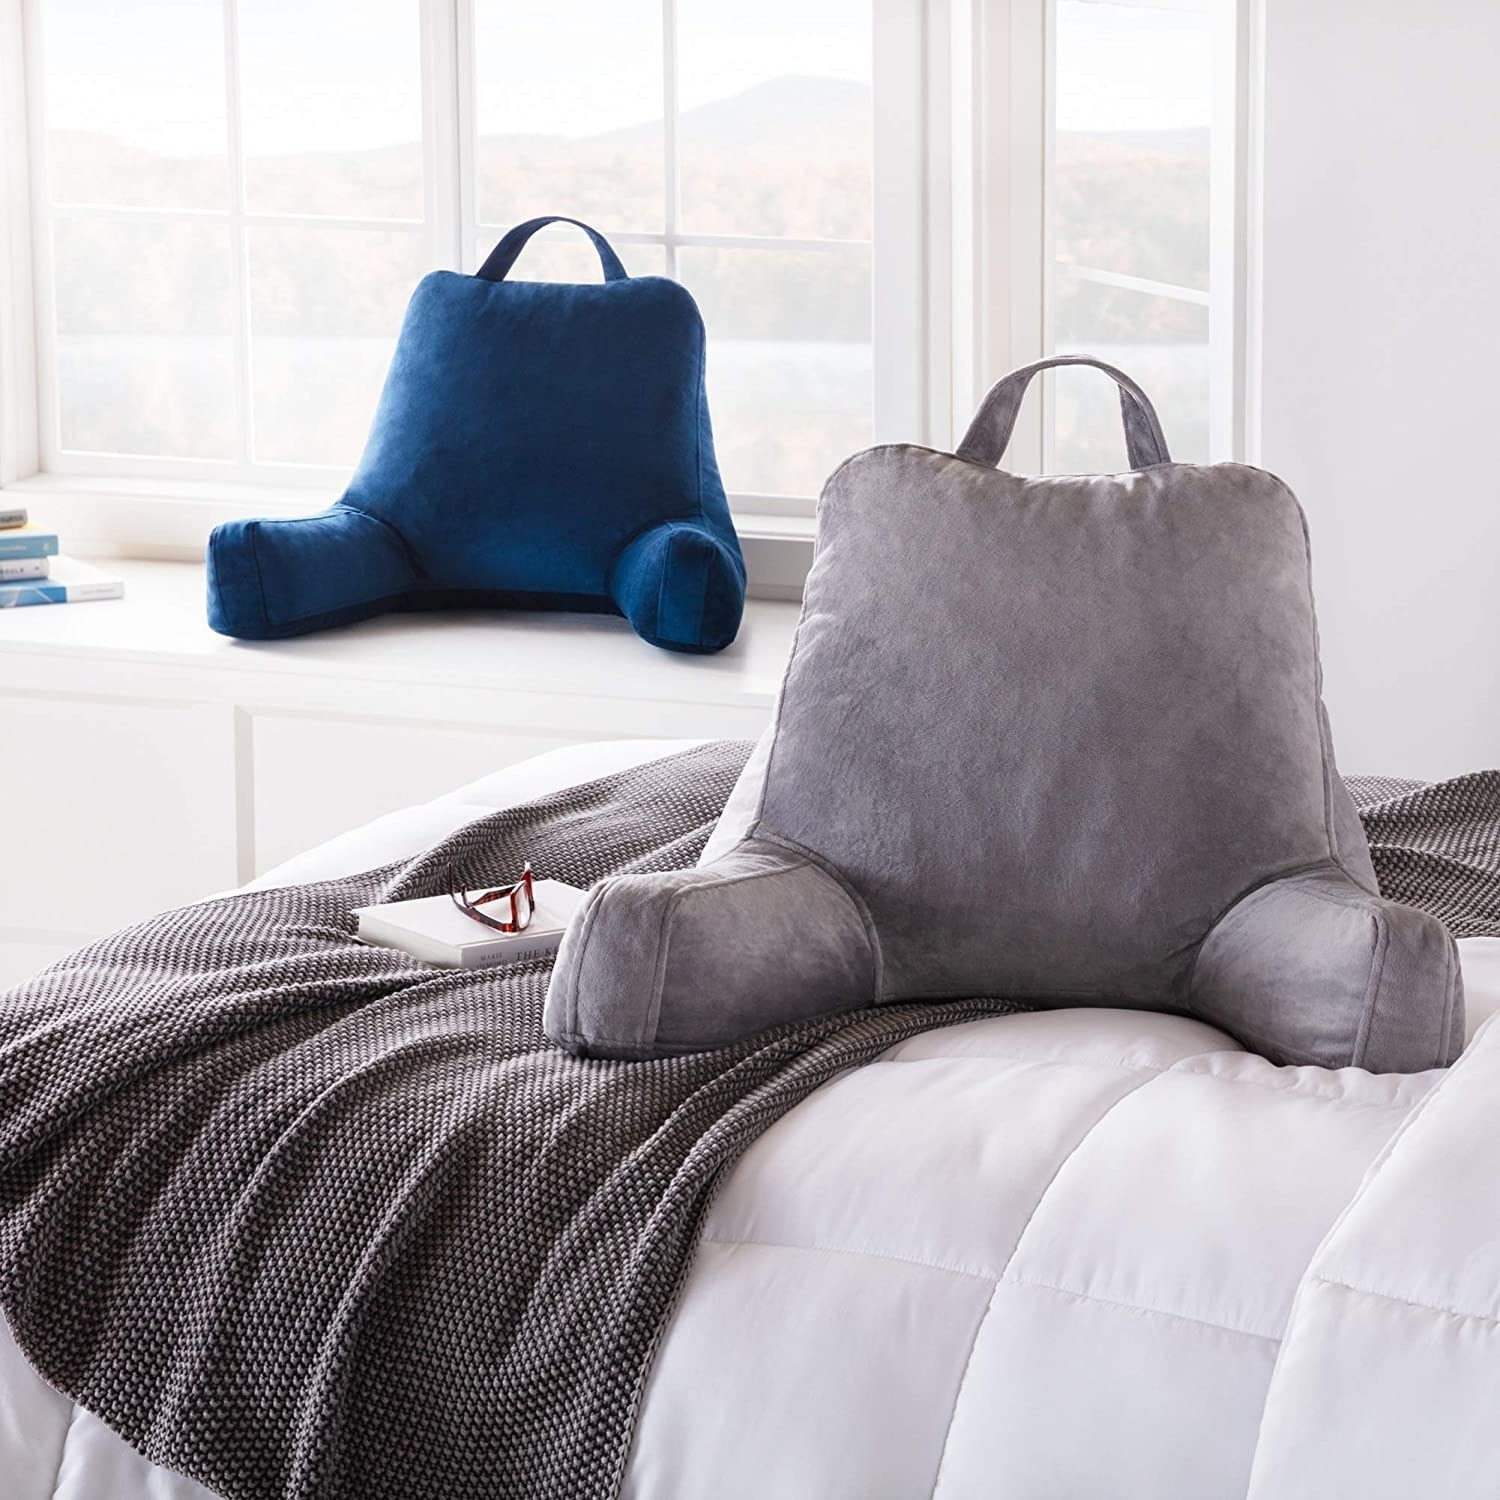 The gray and blue pillows